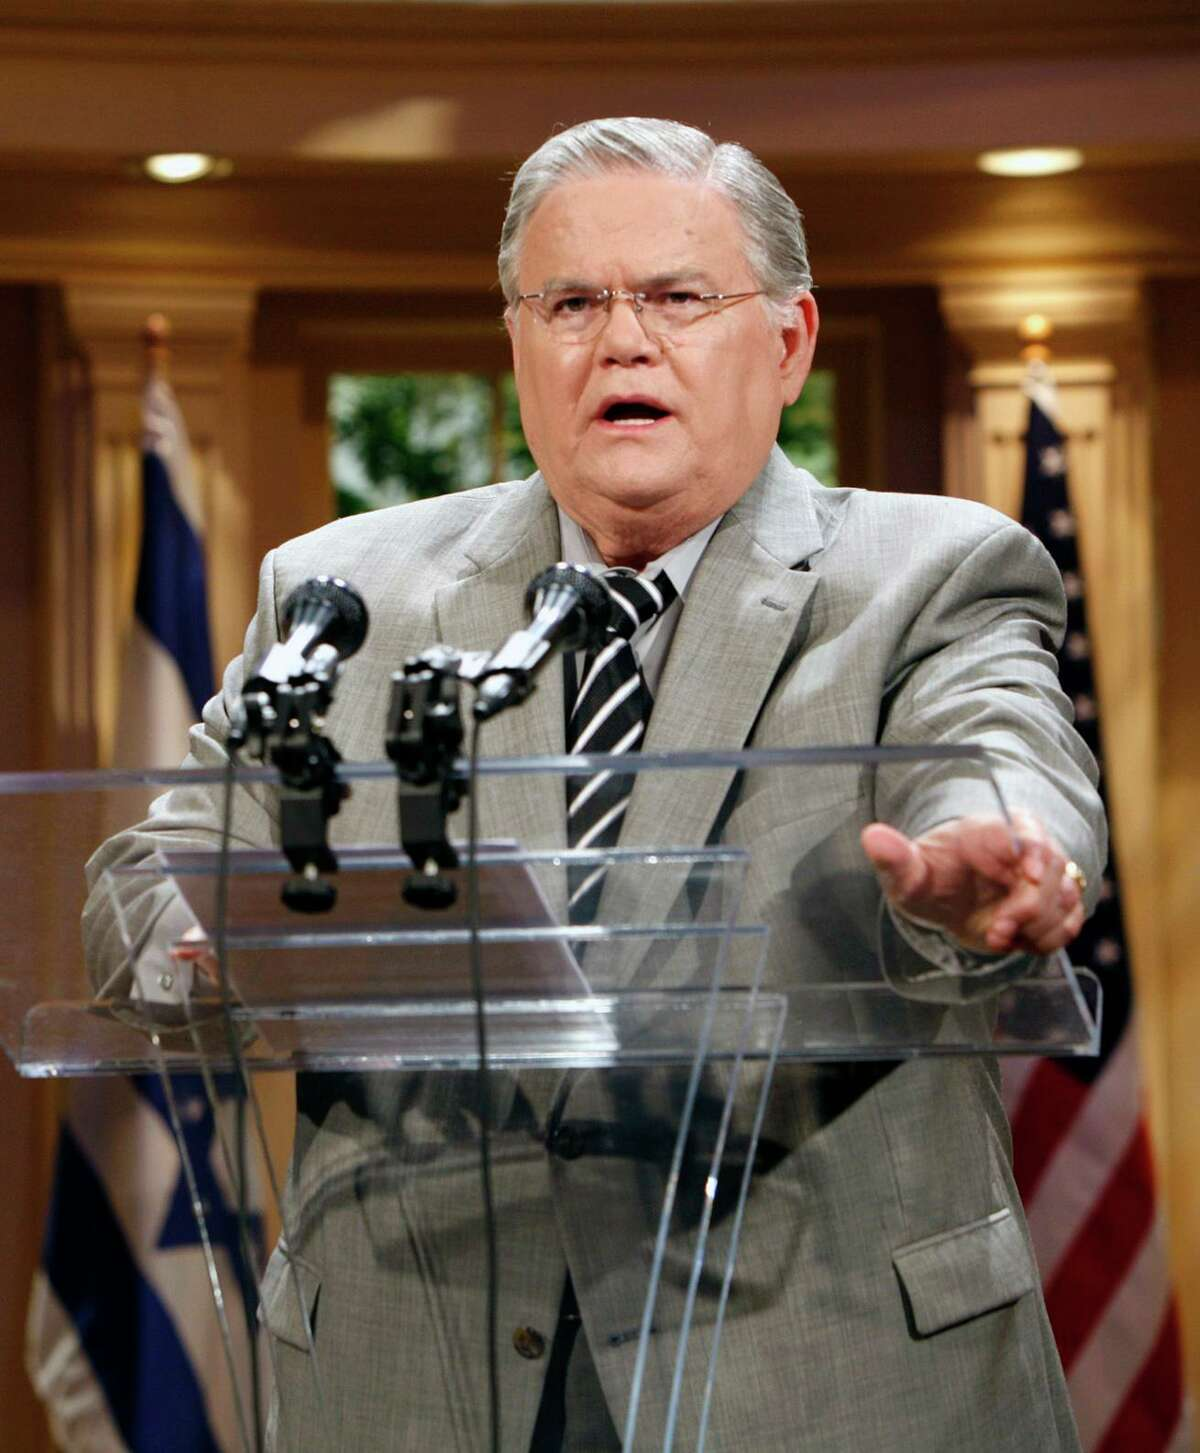 ** FILE ** In this May 23, 2008, file photo the Rev. John Hagee speaks during a news conference at the Cornerstone Church in San Antonio, Texas. Hagee, the inter- nationally known radio/TV evangelist, is recovering after undergoing open heart surgery Thursday, Oct. 2, 2008. (AP Photo /J. Michael Short, File)